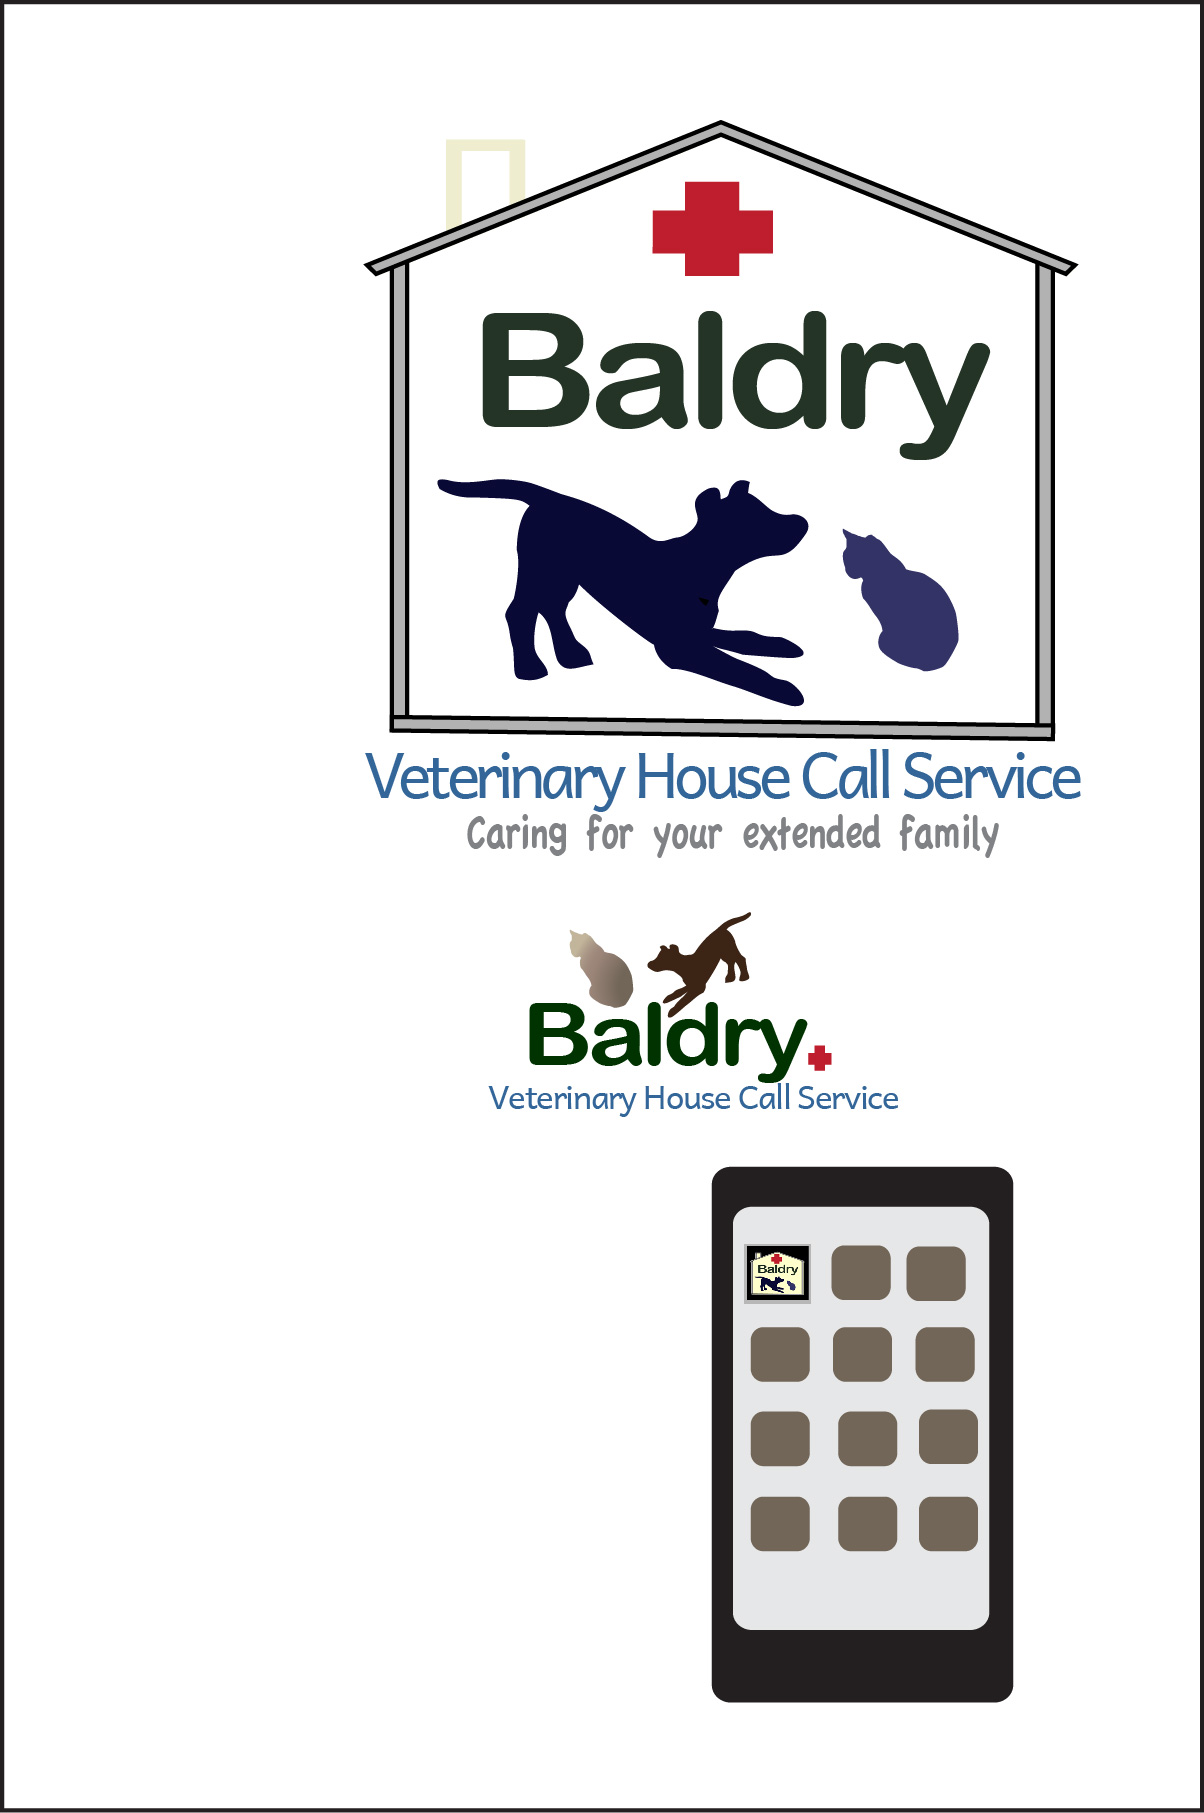 Logo Design by Nancy Grant - Entry No. 137 in the Logo Design Contest Captivating Logo Design for Baldry Veterinary House Call Service.